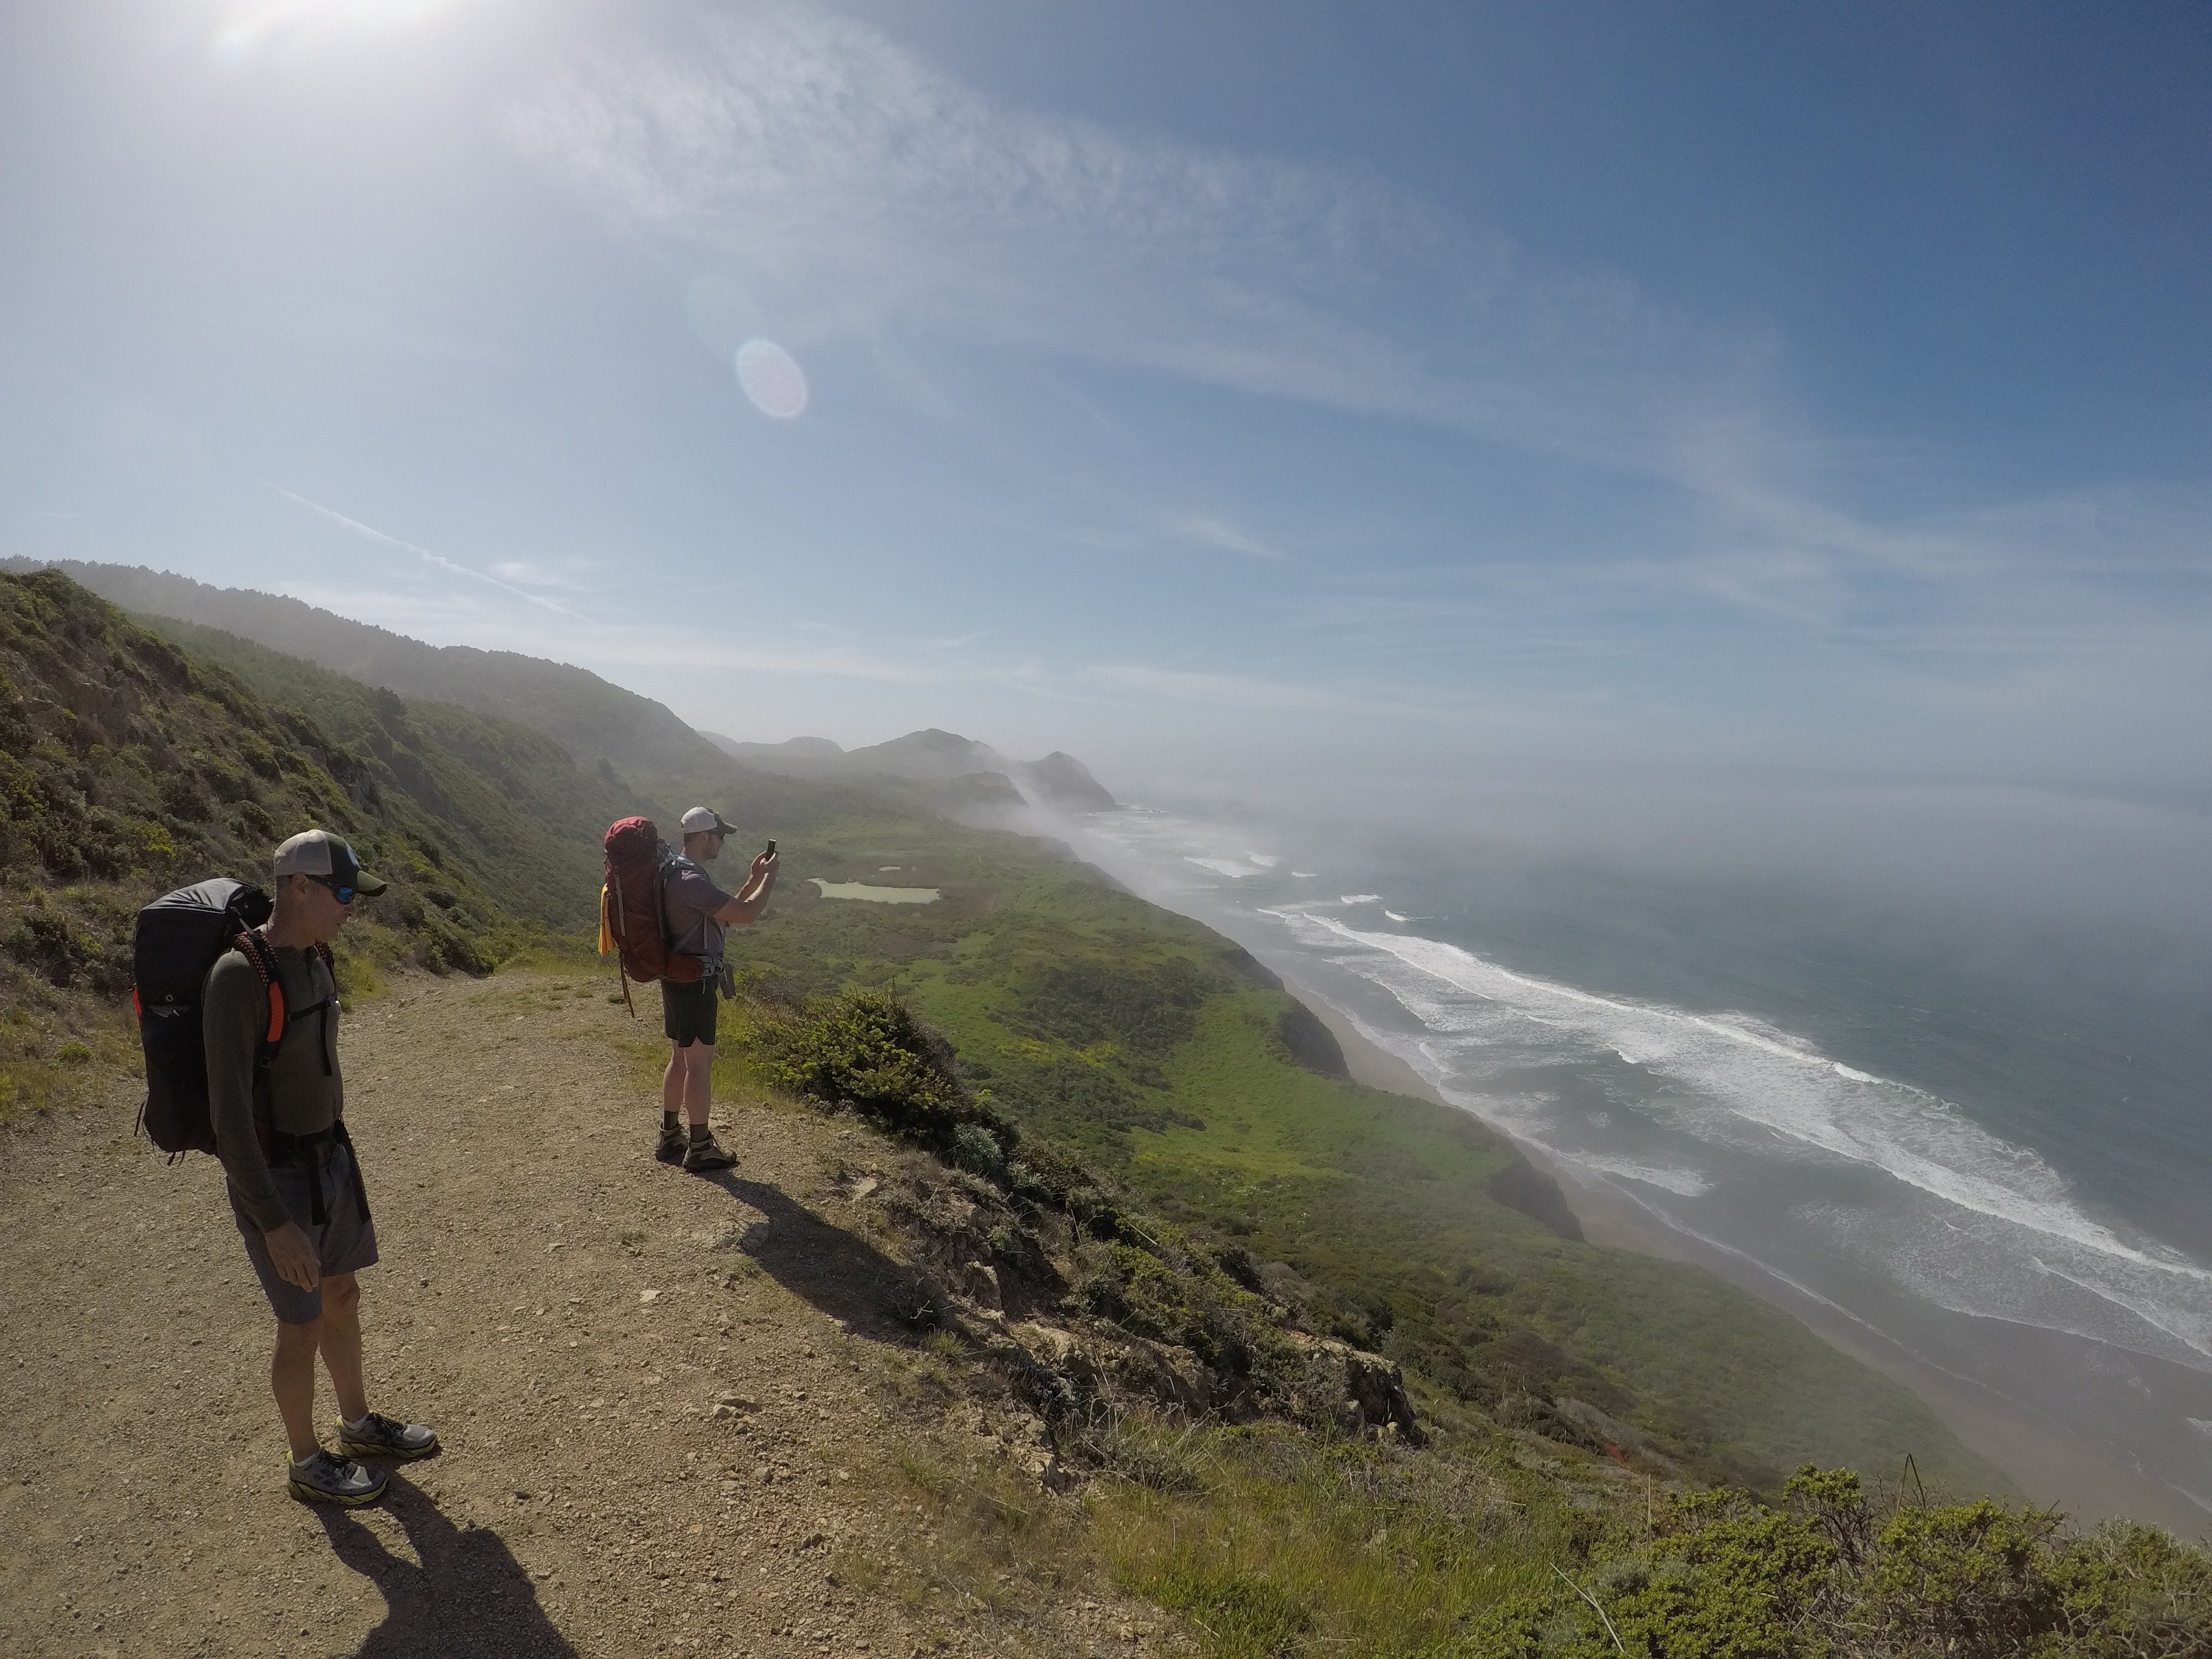 Backpackers overlooking the bluff and down to the Pacific ocean at Point Reyes National Seashore near Wildcat Camp